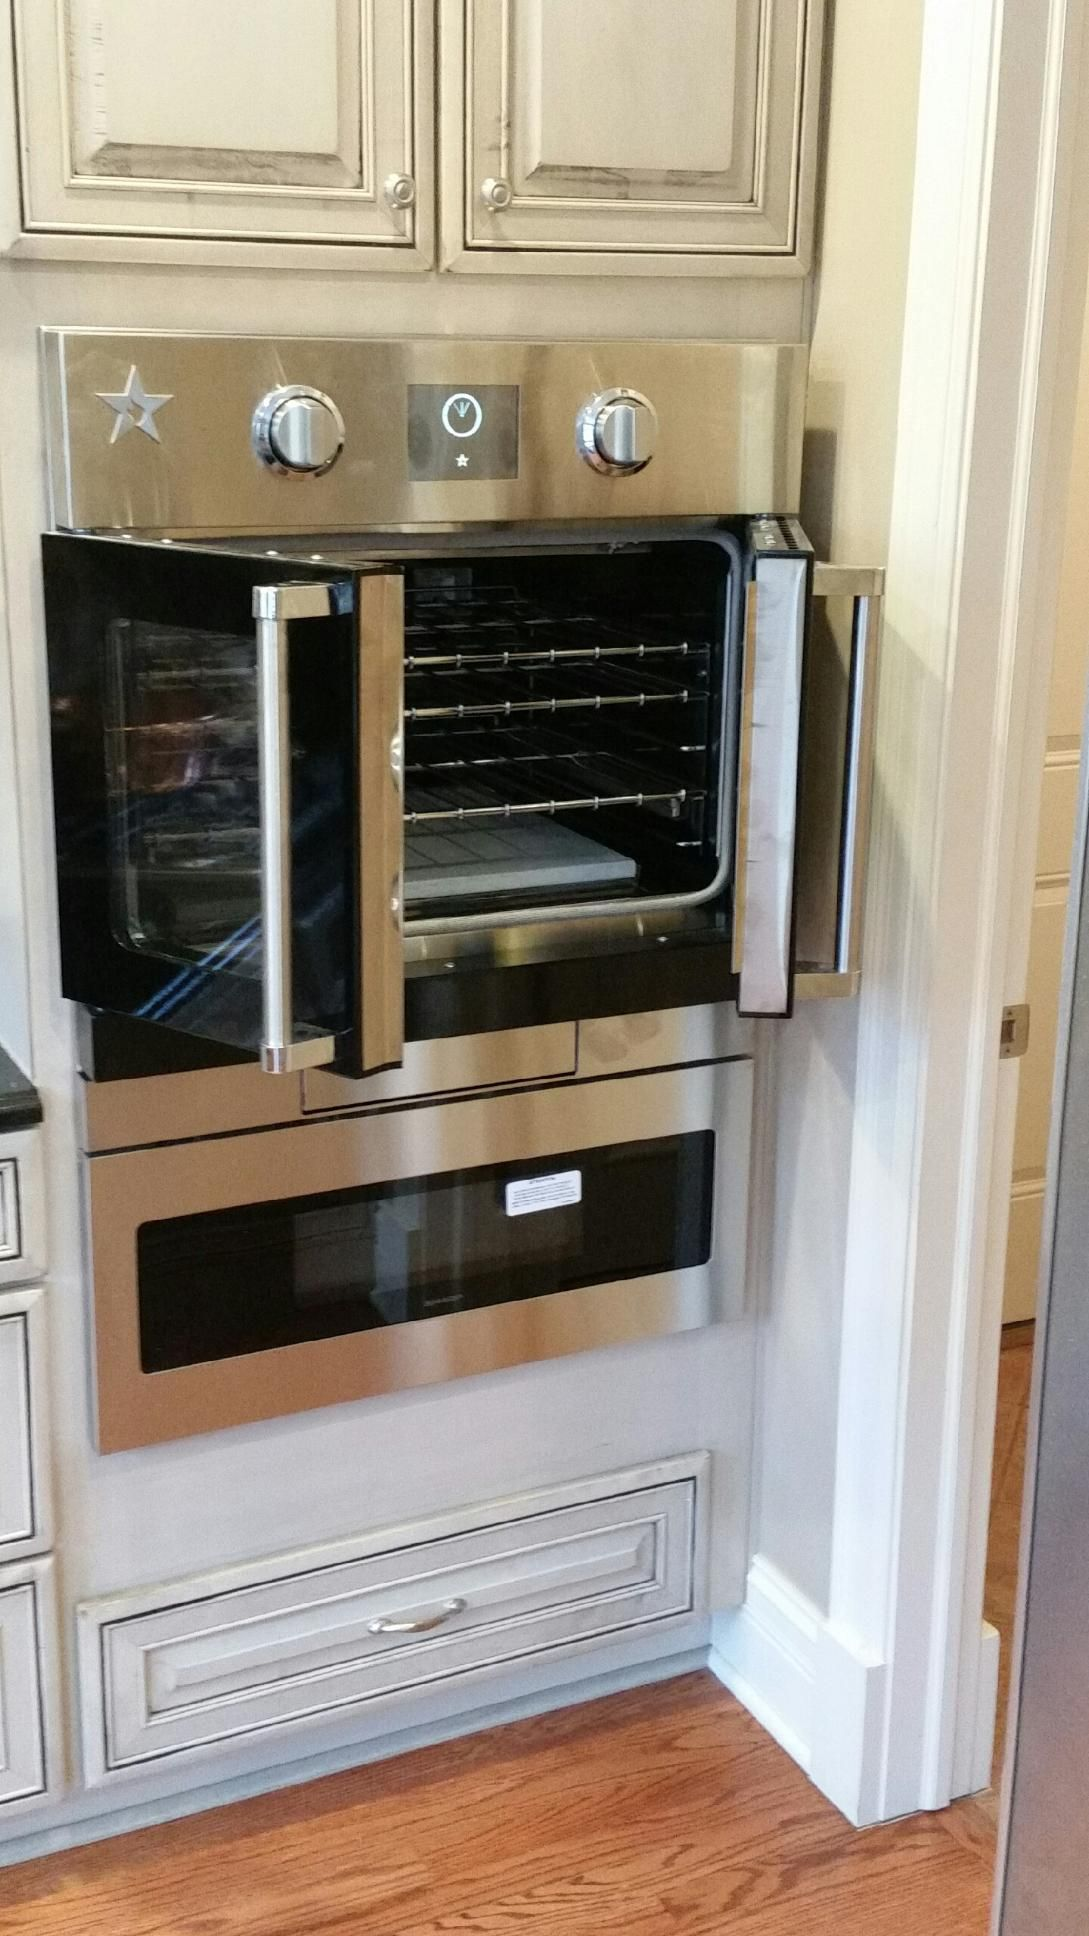 Sharp Microwave Drawer Installed Underneath French Door